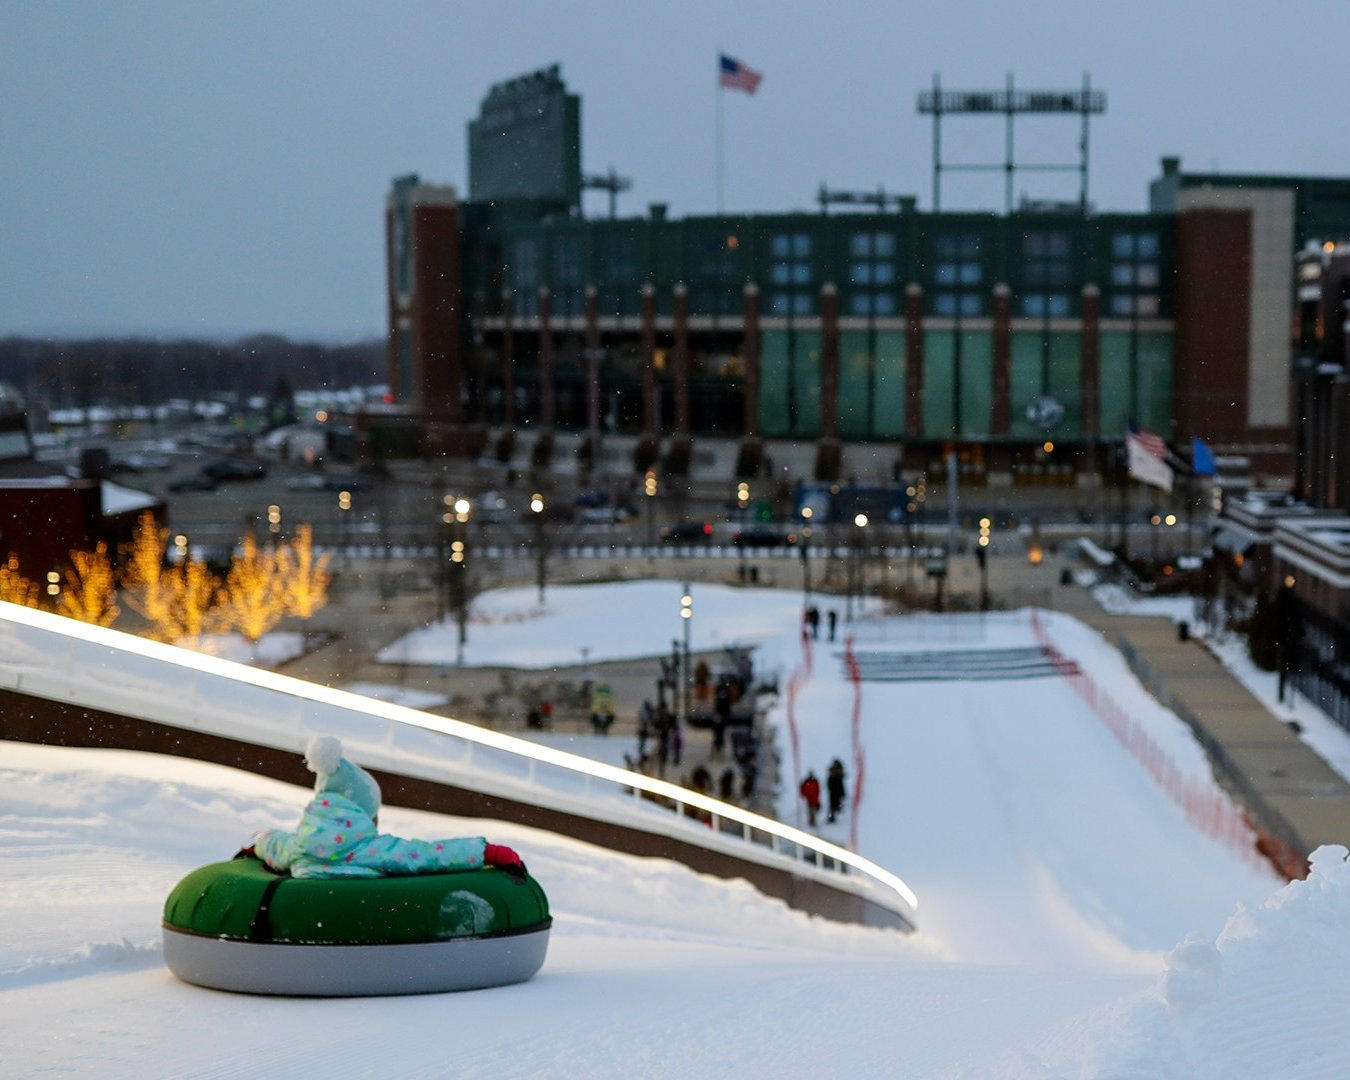 Get outside and enjoy winter in Green Bay